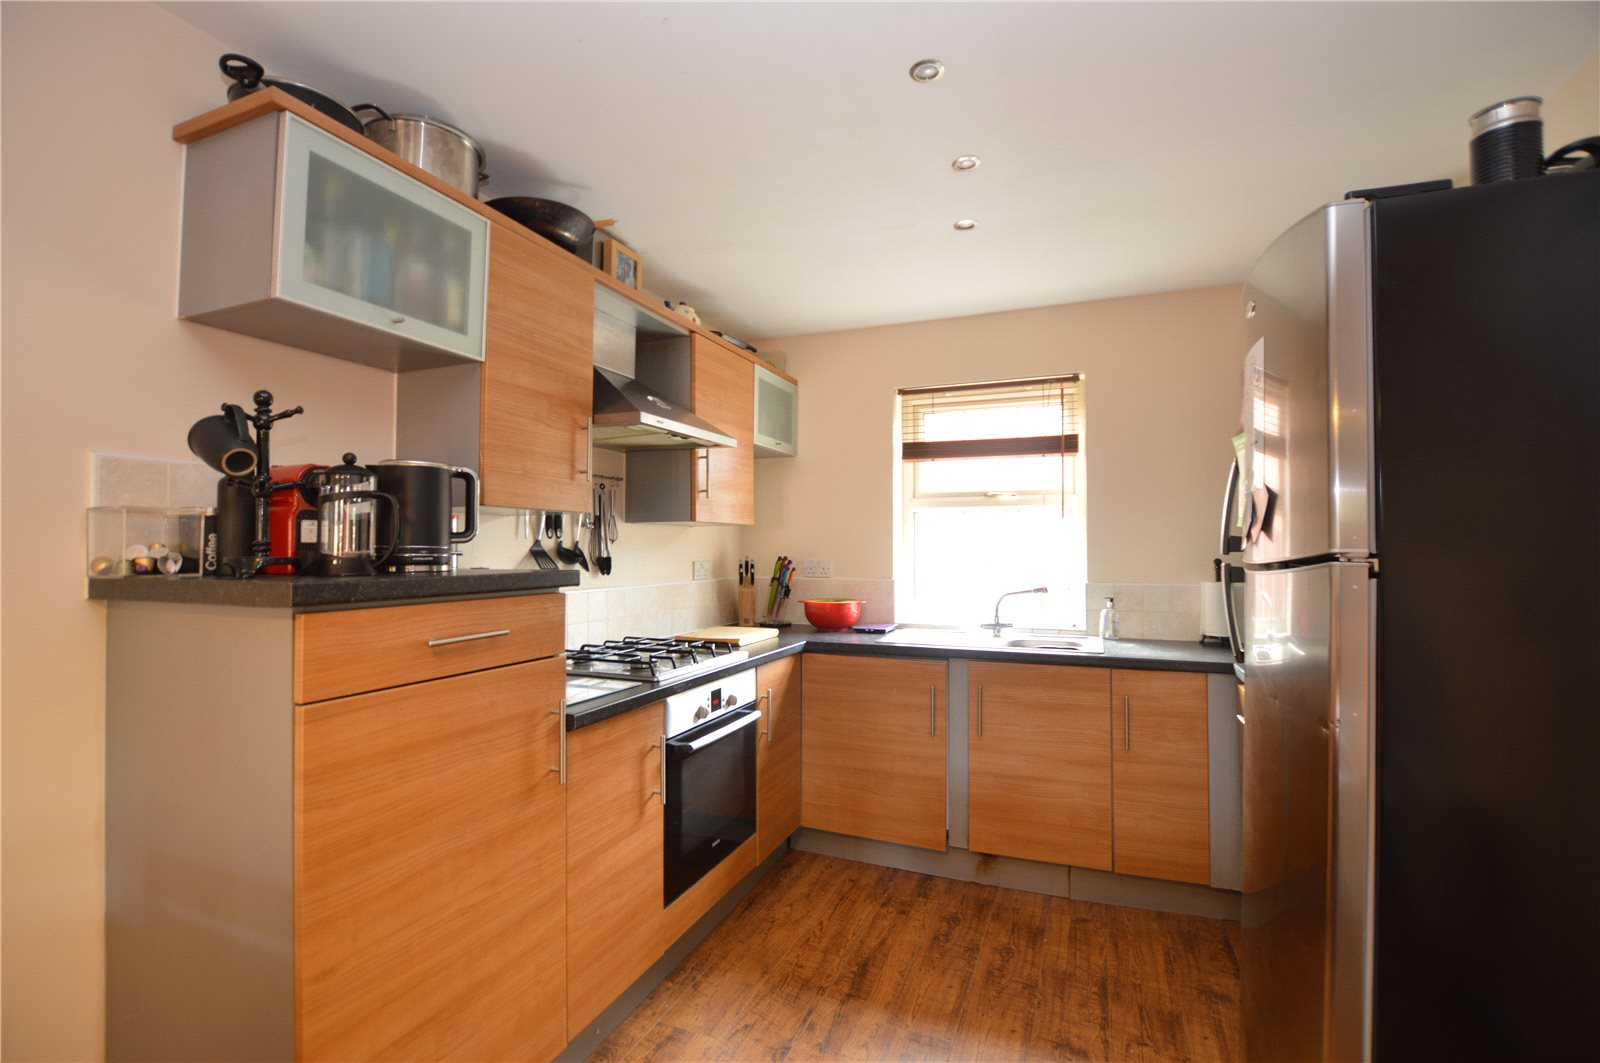 property for sale in Pudsey, interior fitted modern kitchen space